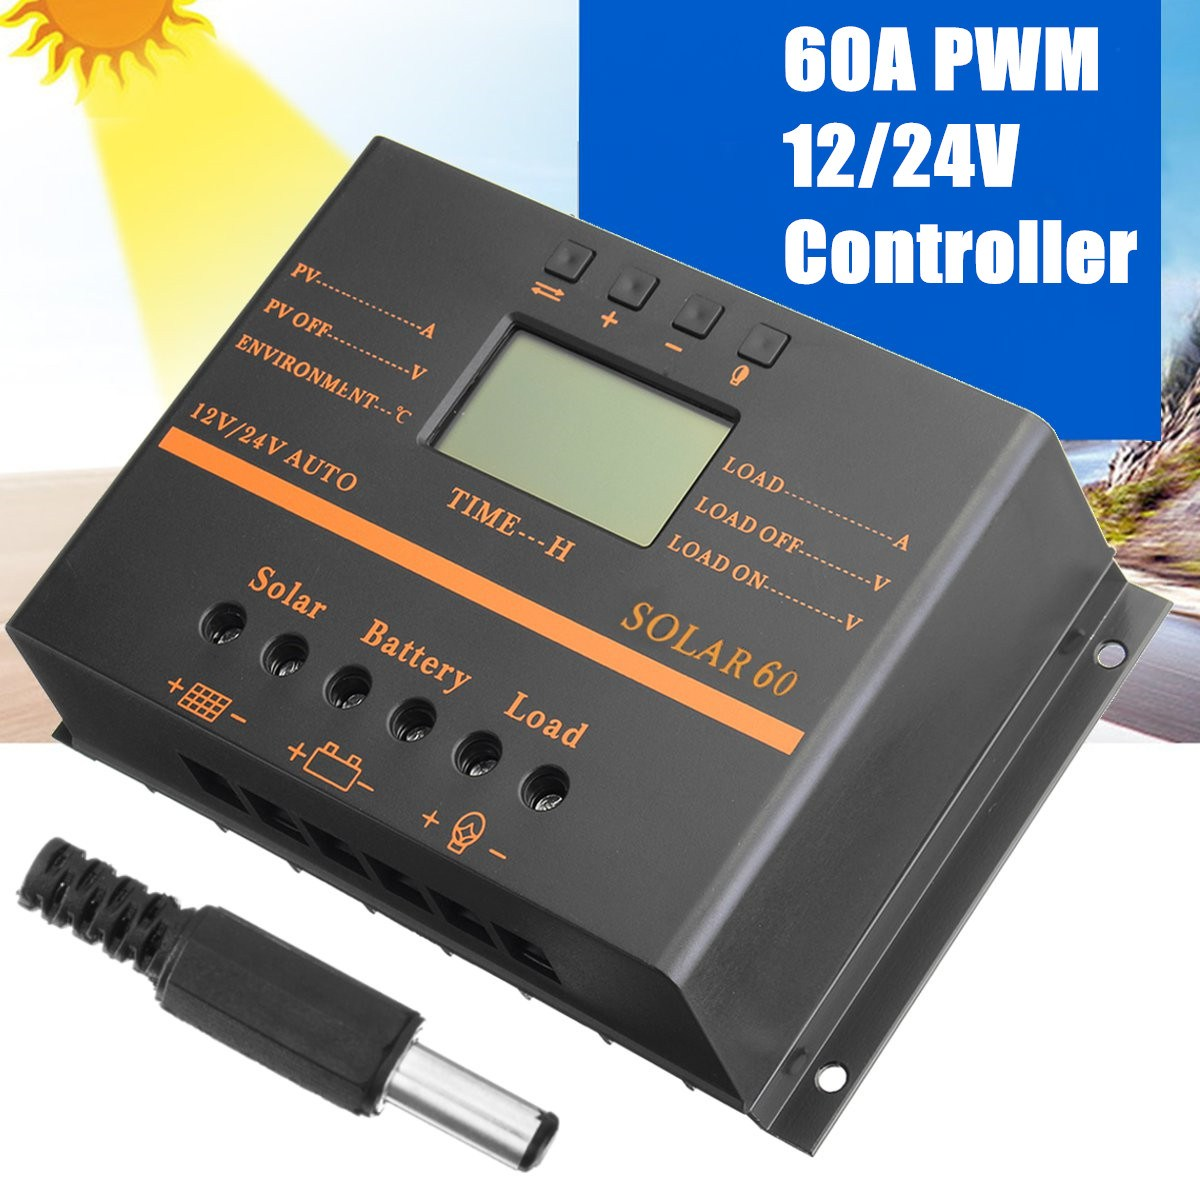 60A New Solar Controller 5V USB charger for mobile phone 12V 24V PV panel Battery Charge Controller Solar system Home indoor use